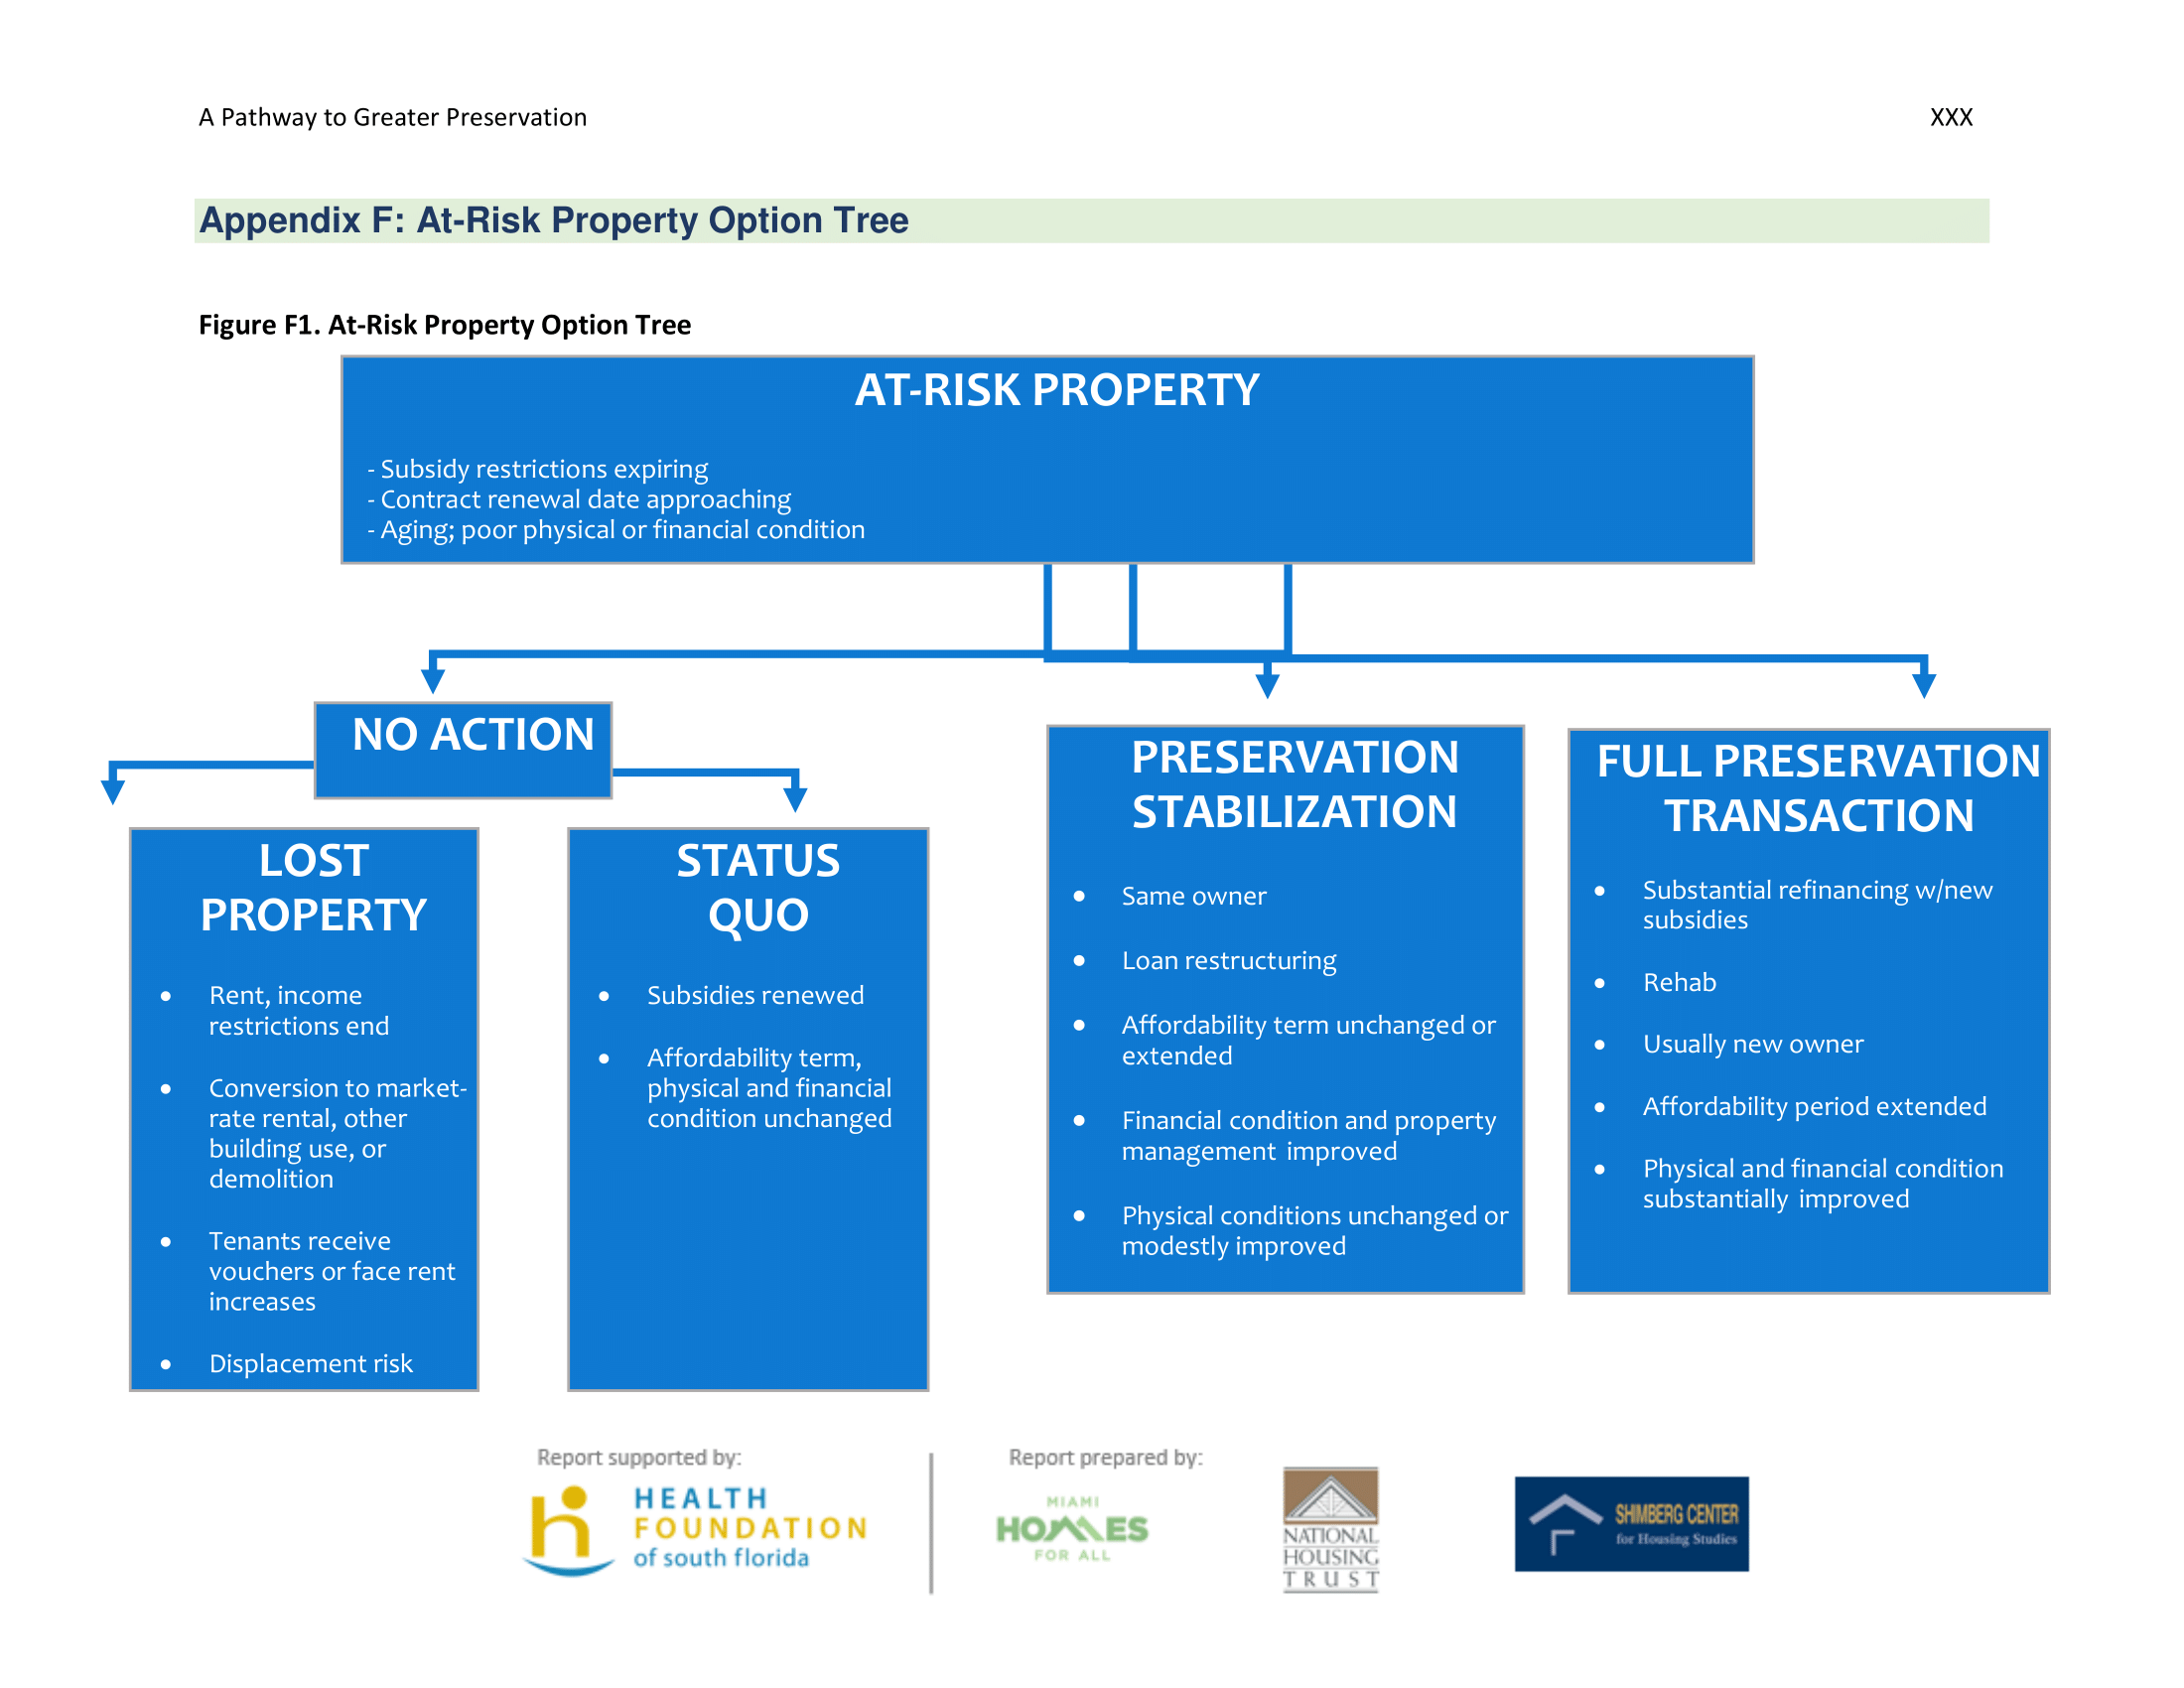 A Pathway to Greater Preservation - February 2018-76.png